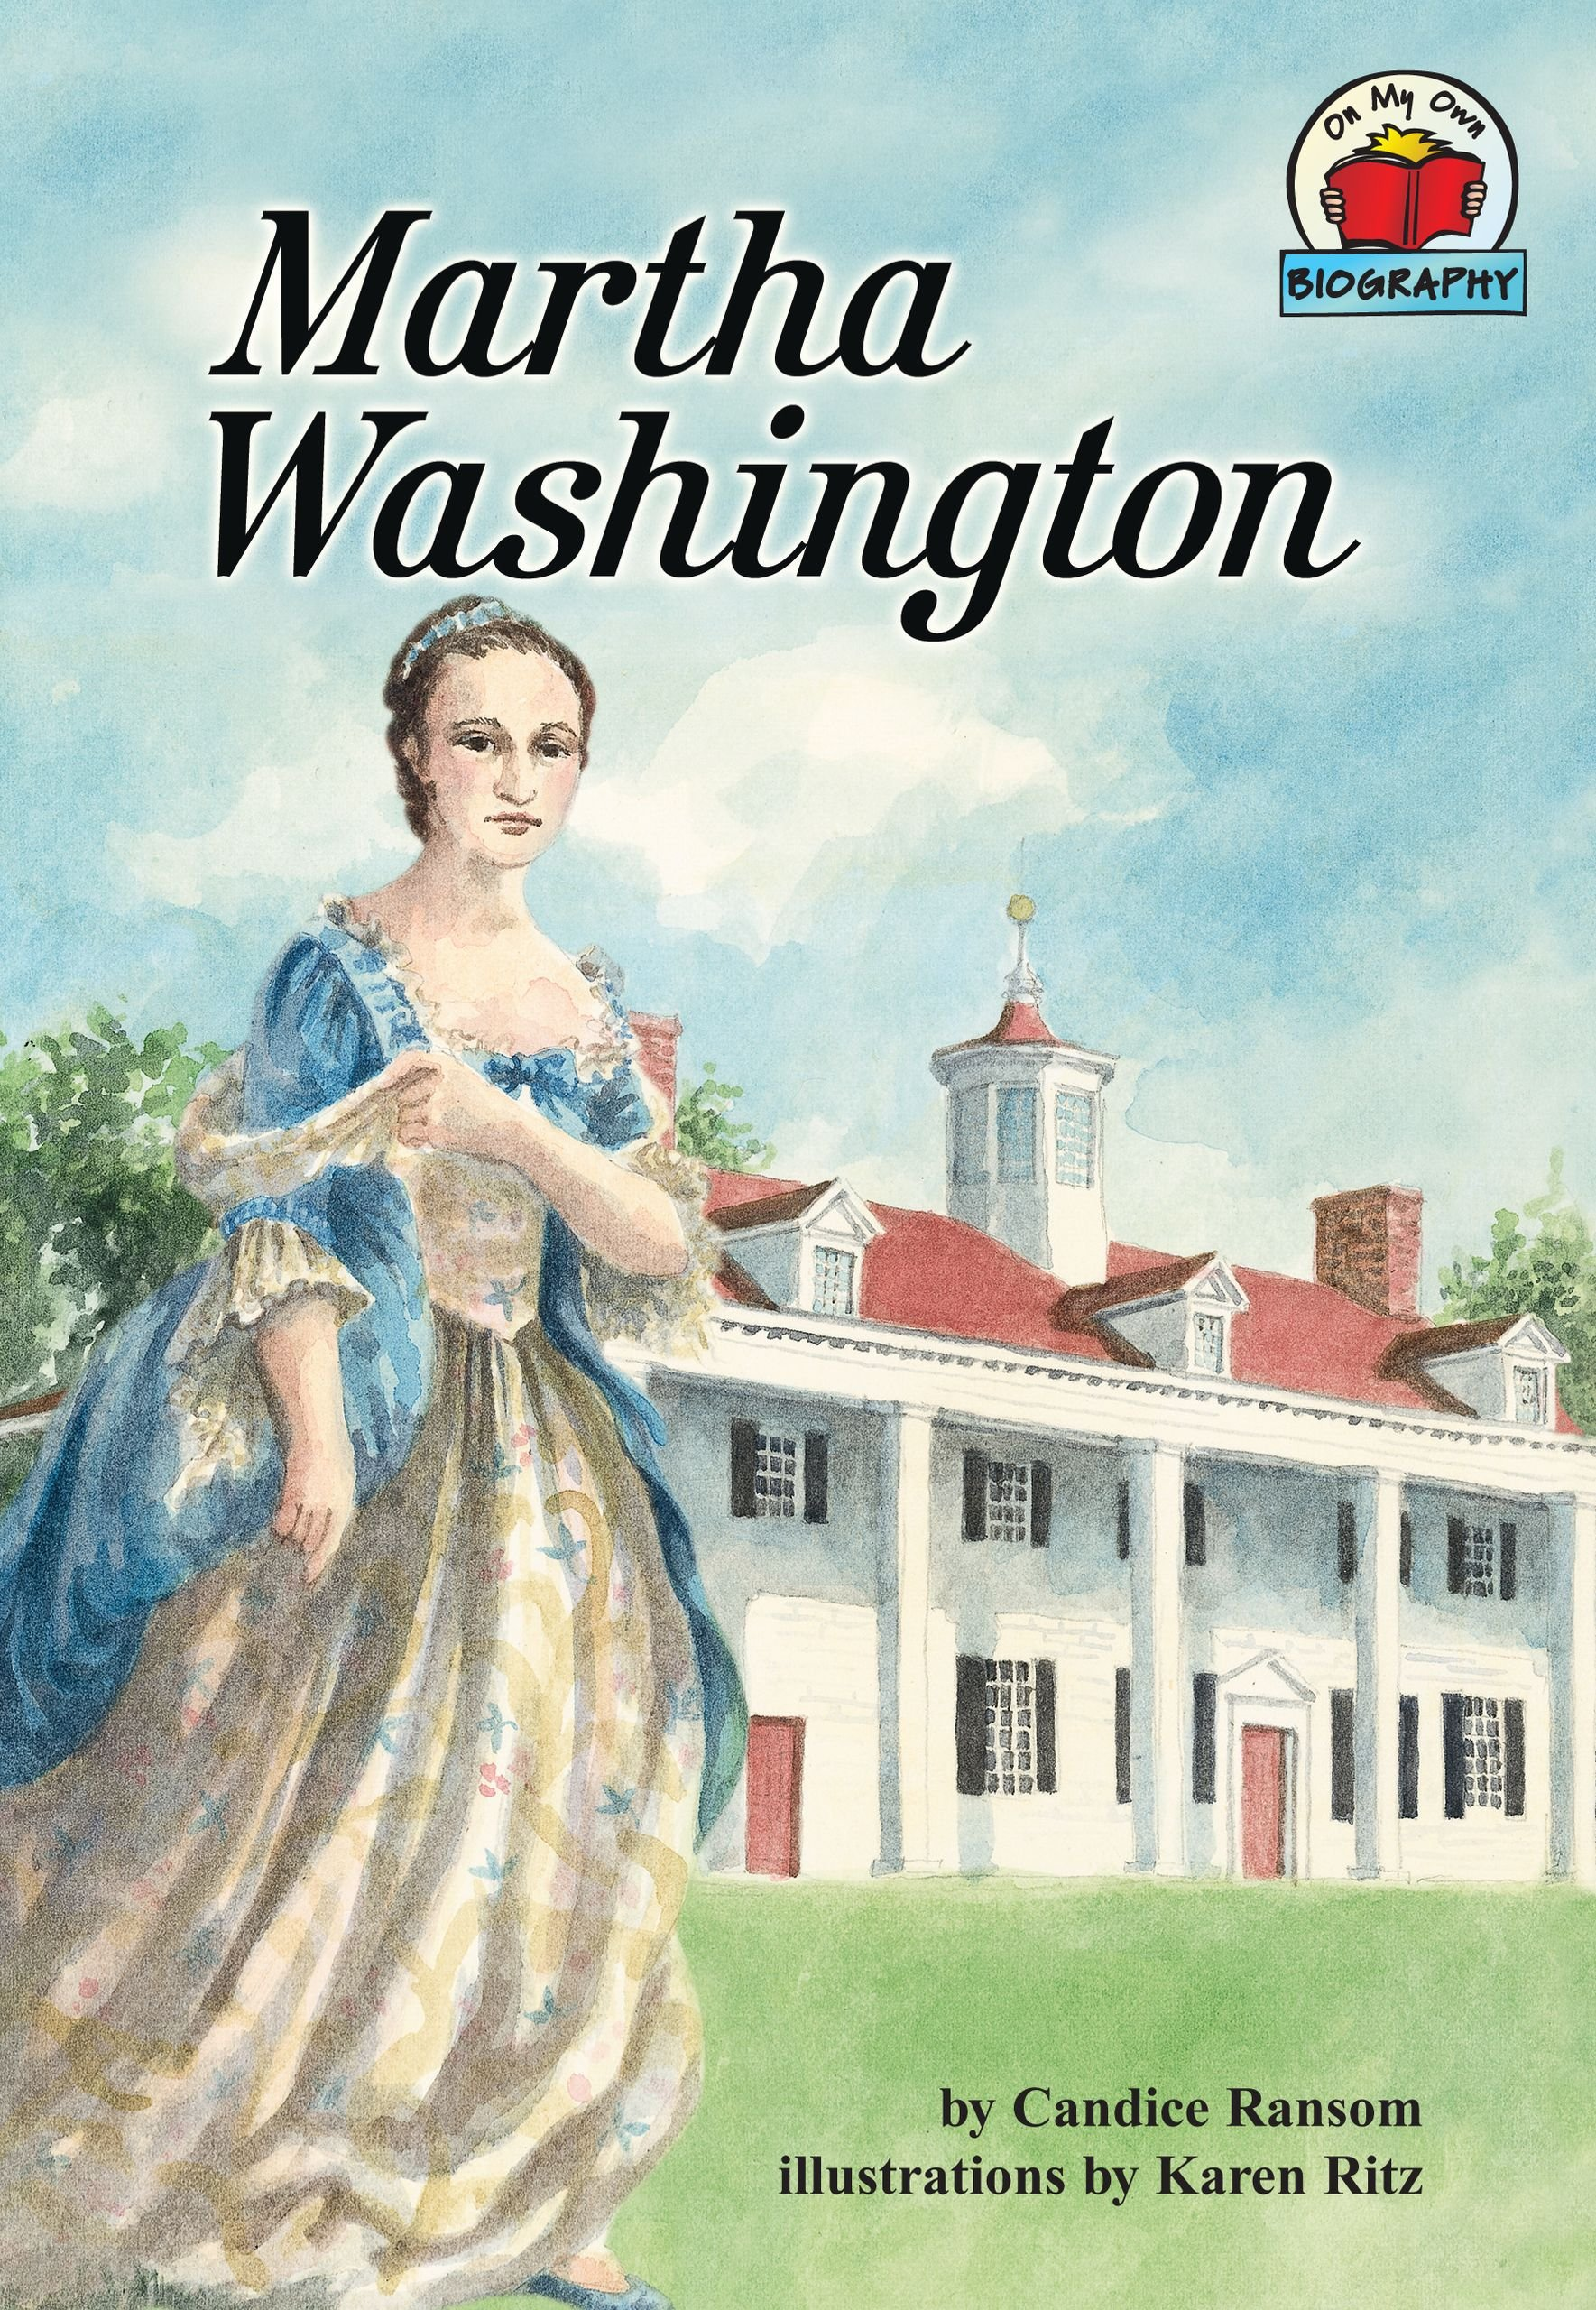 Martha Washington My Own Biography product image